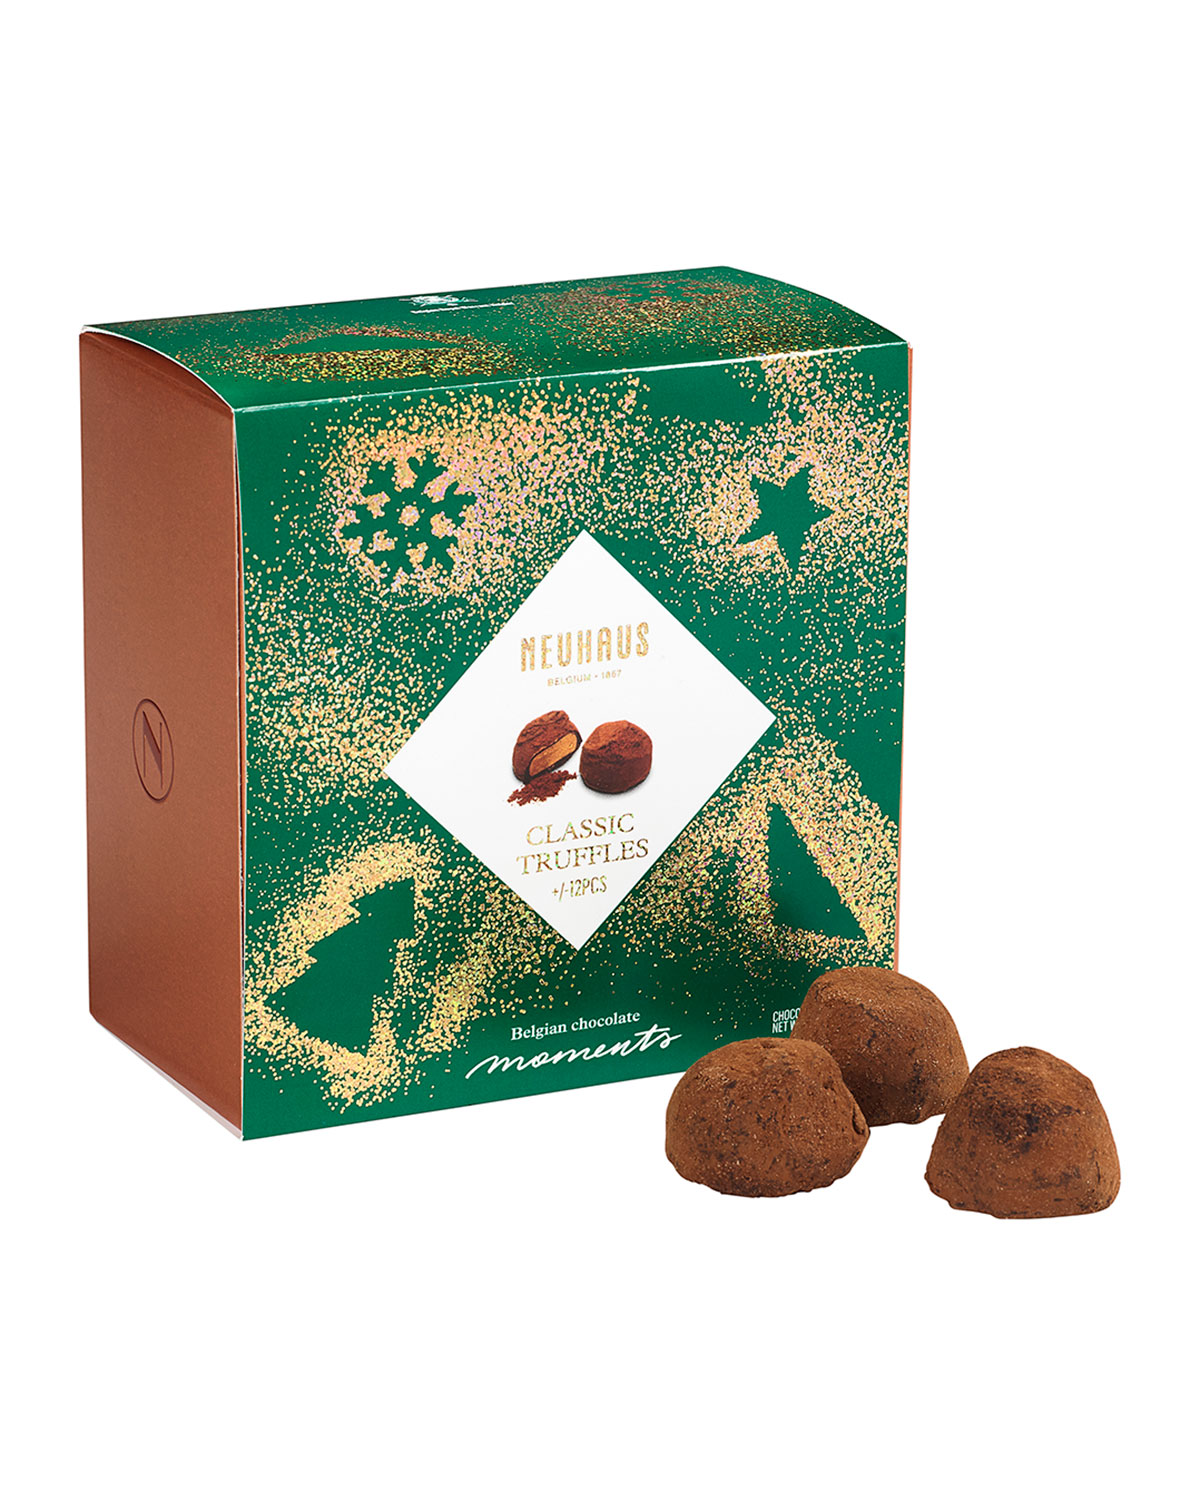 12-Piece Classic Truffles Moments Box